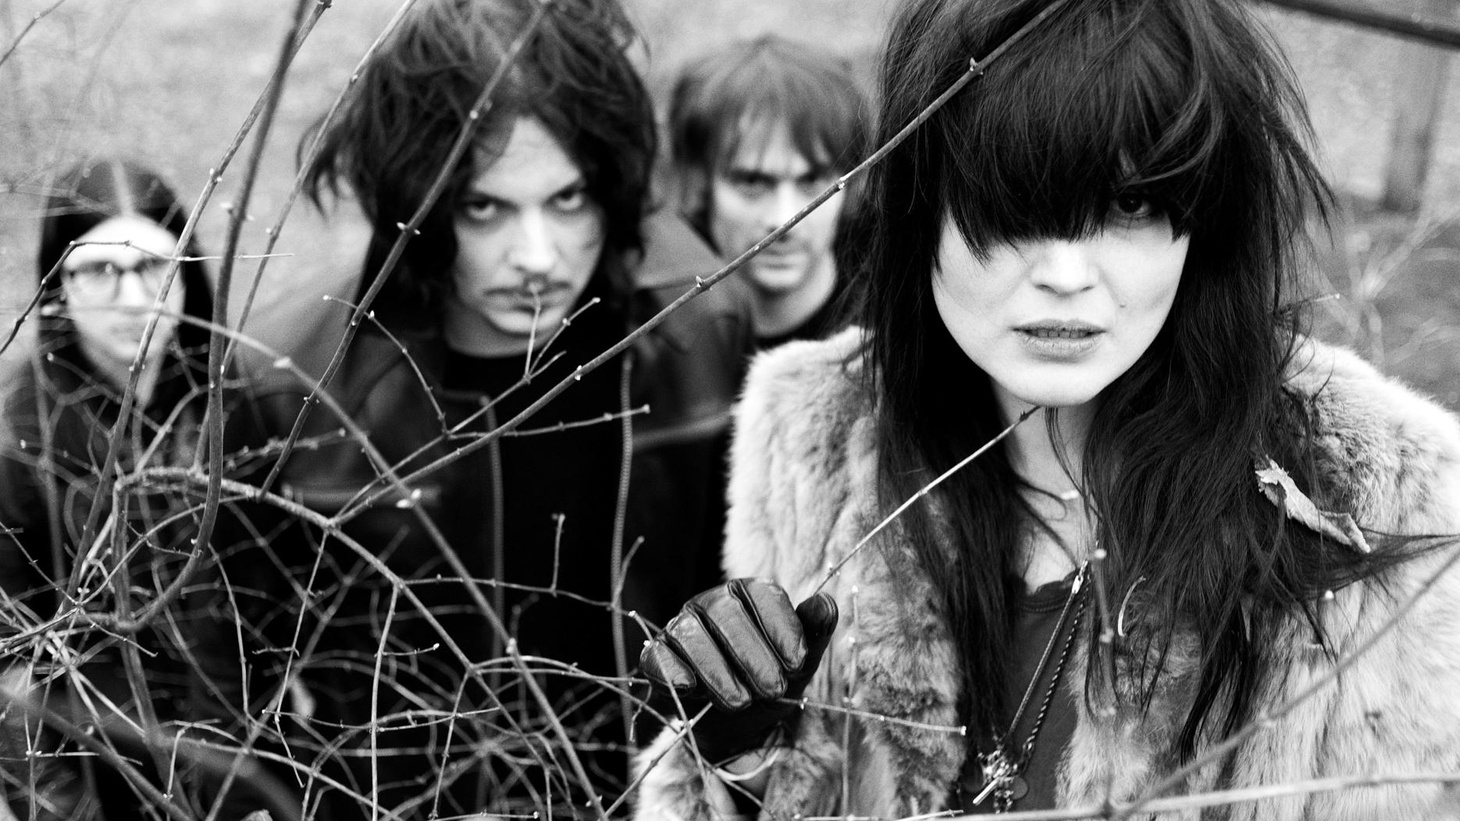 """...from Horehound.   Jack White explores his talents as a drummer in his latest band, The Dead Weather, which features The Kills' Alison Mosshart on vocals, Raconteurs' bassist """"Little Jack"""" Lawrence and Queens of the Stone Age guitarist Dean Fertita..."""